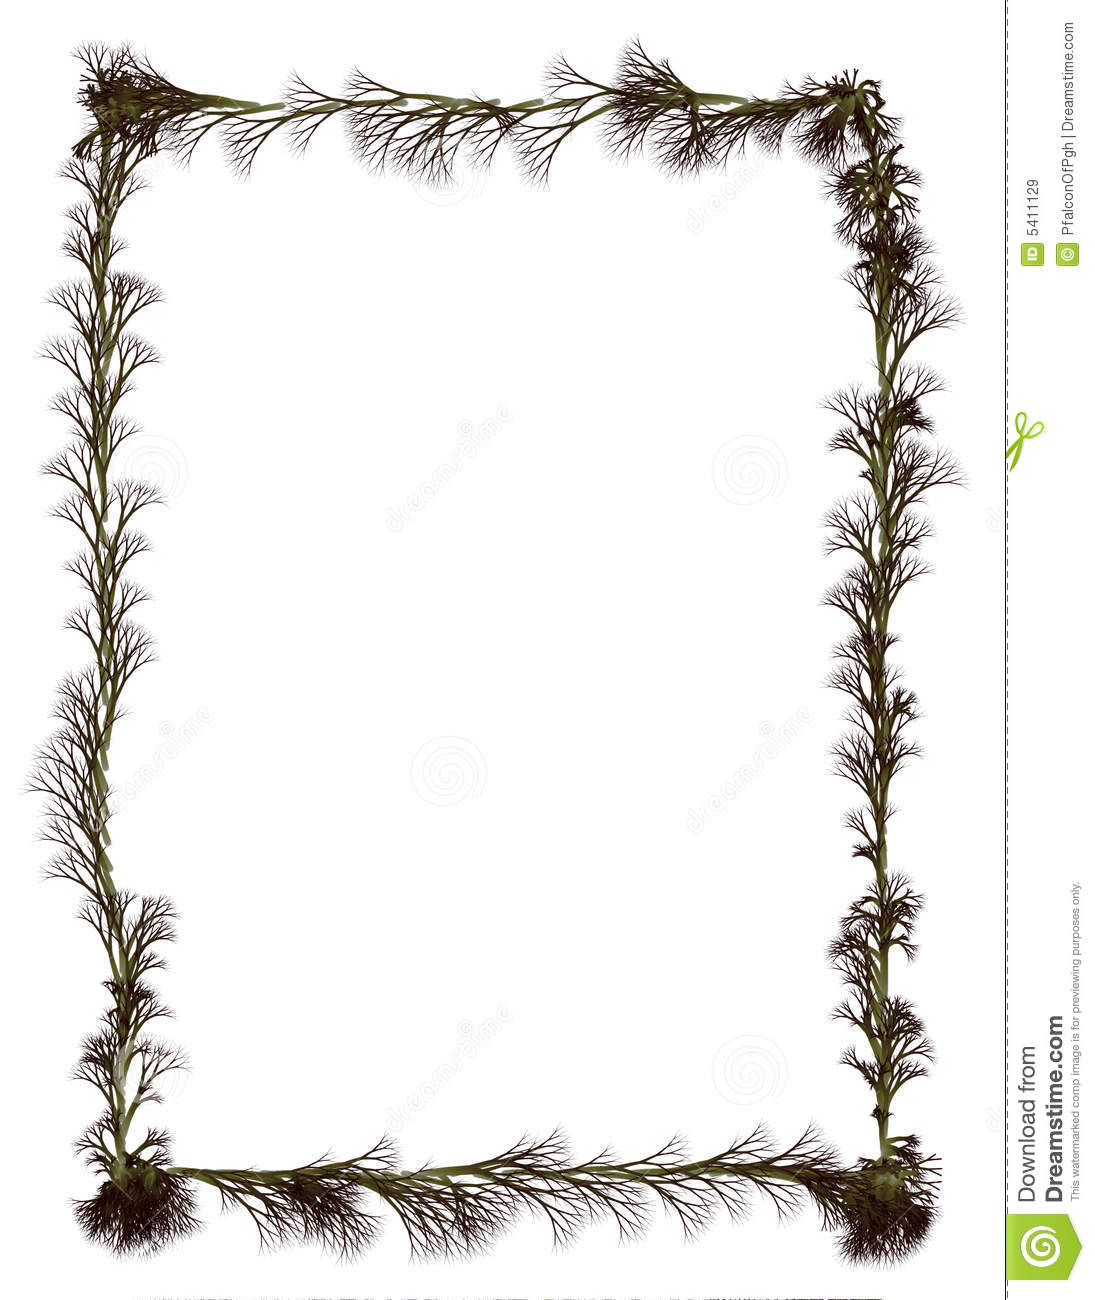 Border: Roots Royalty Free Stock Images Image: 5411129